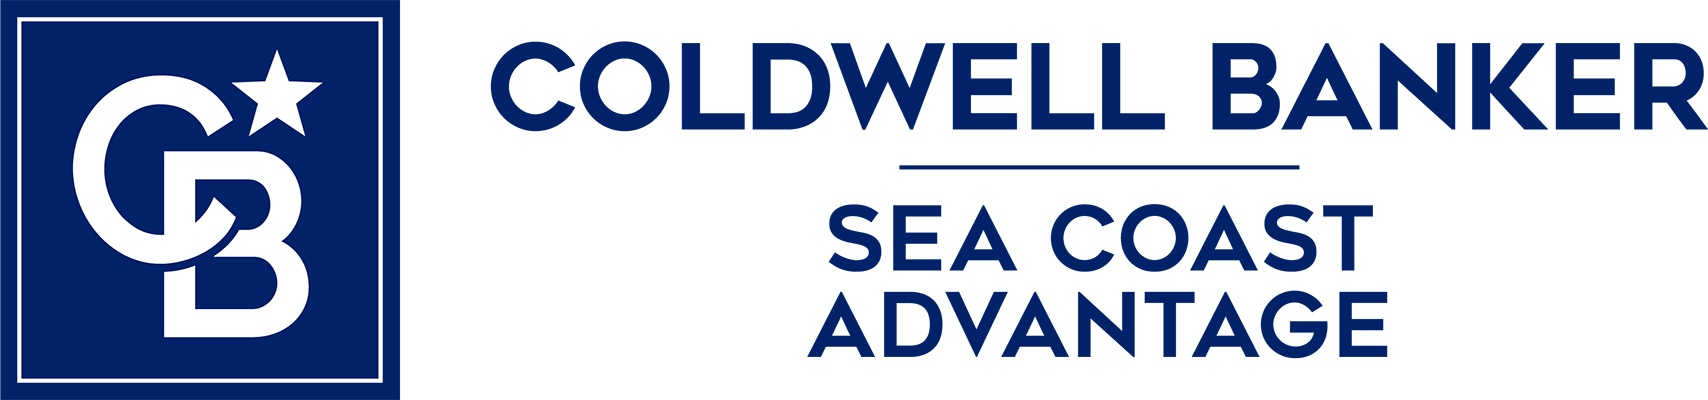 Denise Kinney - Coldwell Banker Sea Coast Advantage Realty